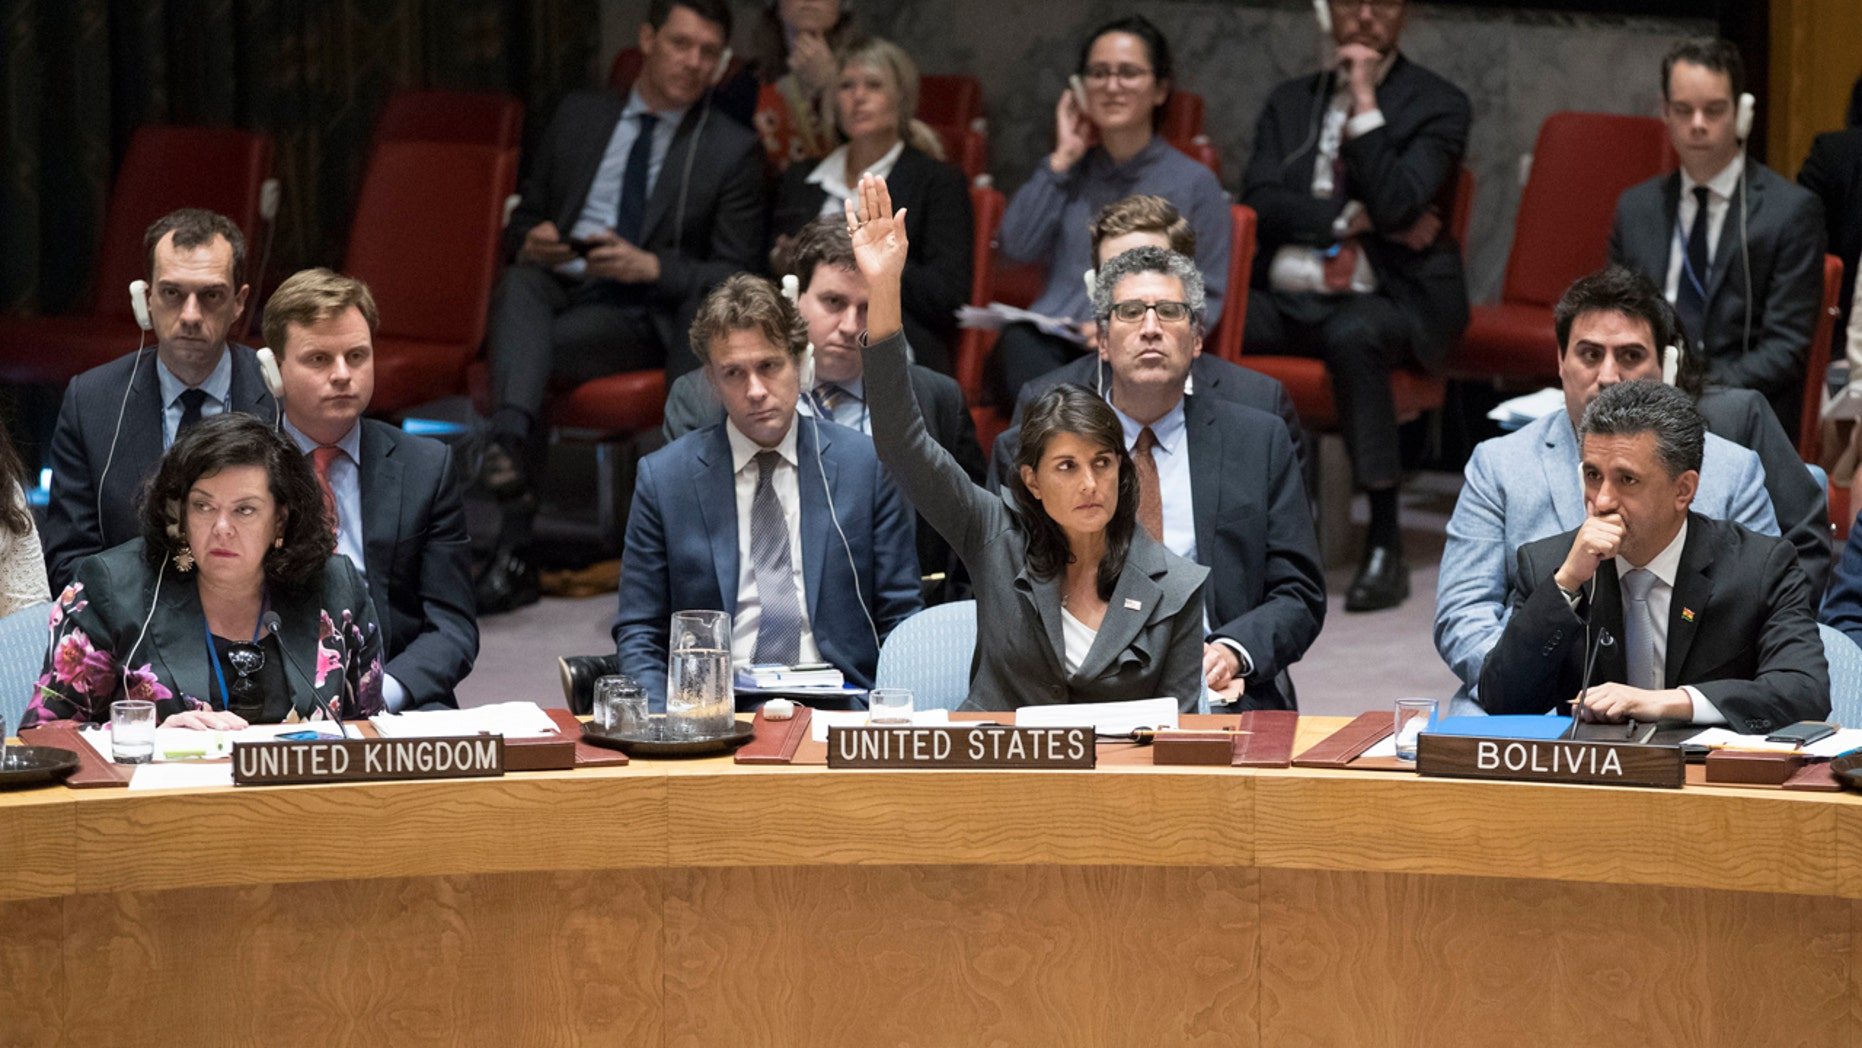 U.S. Ambassador to the United Nations Nikki Haley, center, votes in favor of a resolution introduced by the United States during a Security Council meeting on the situation between the Israelis and the Palestinians, Friday, June 1, 2018 at United Nations headquarters.